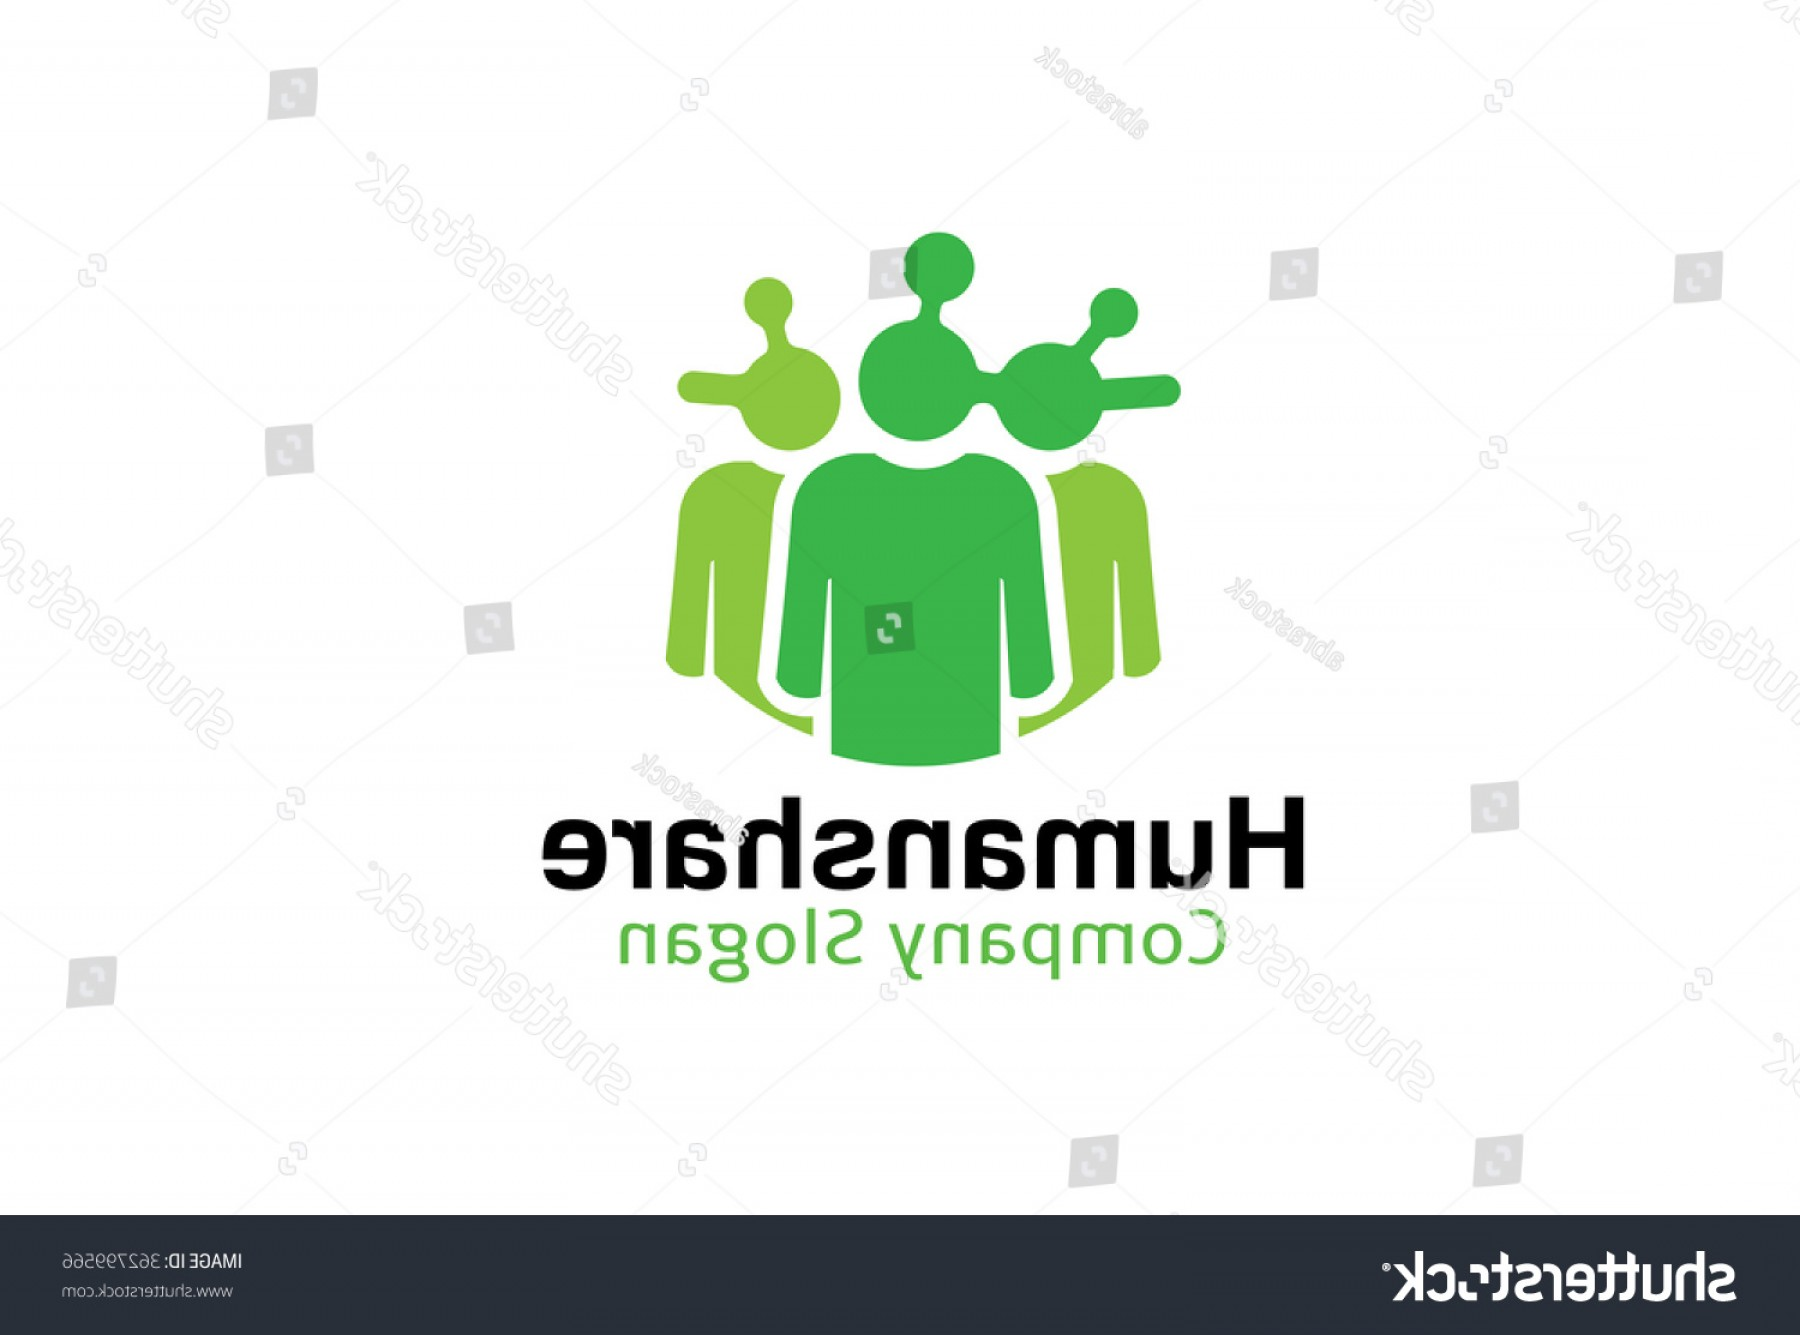 Share Logo Vector: Human Share Logo Design Illustration